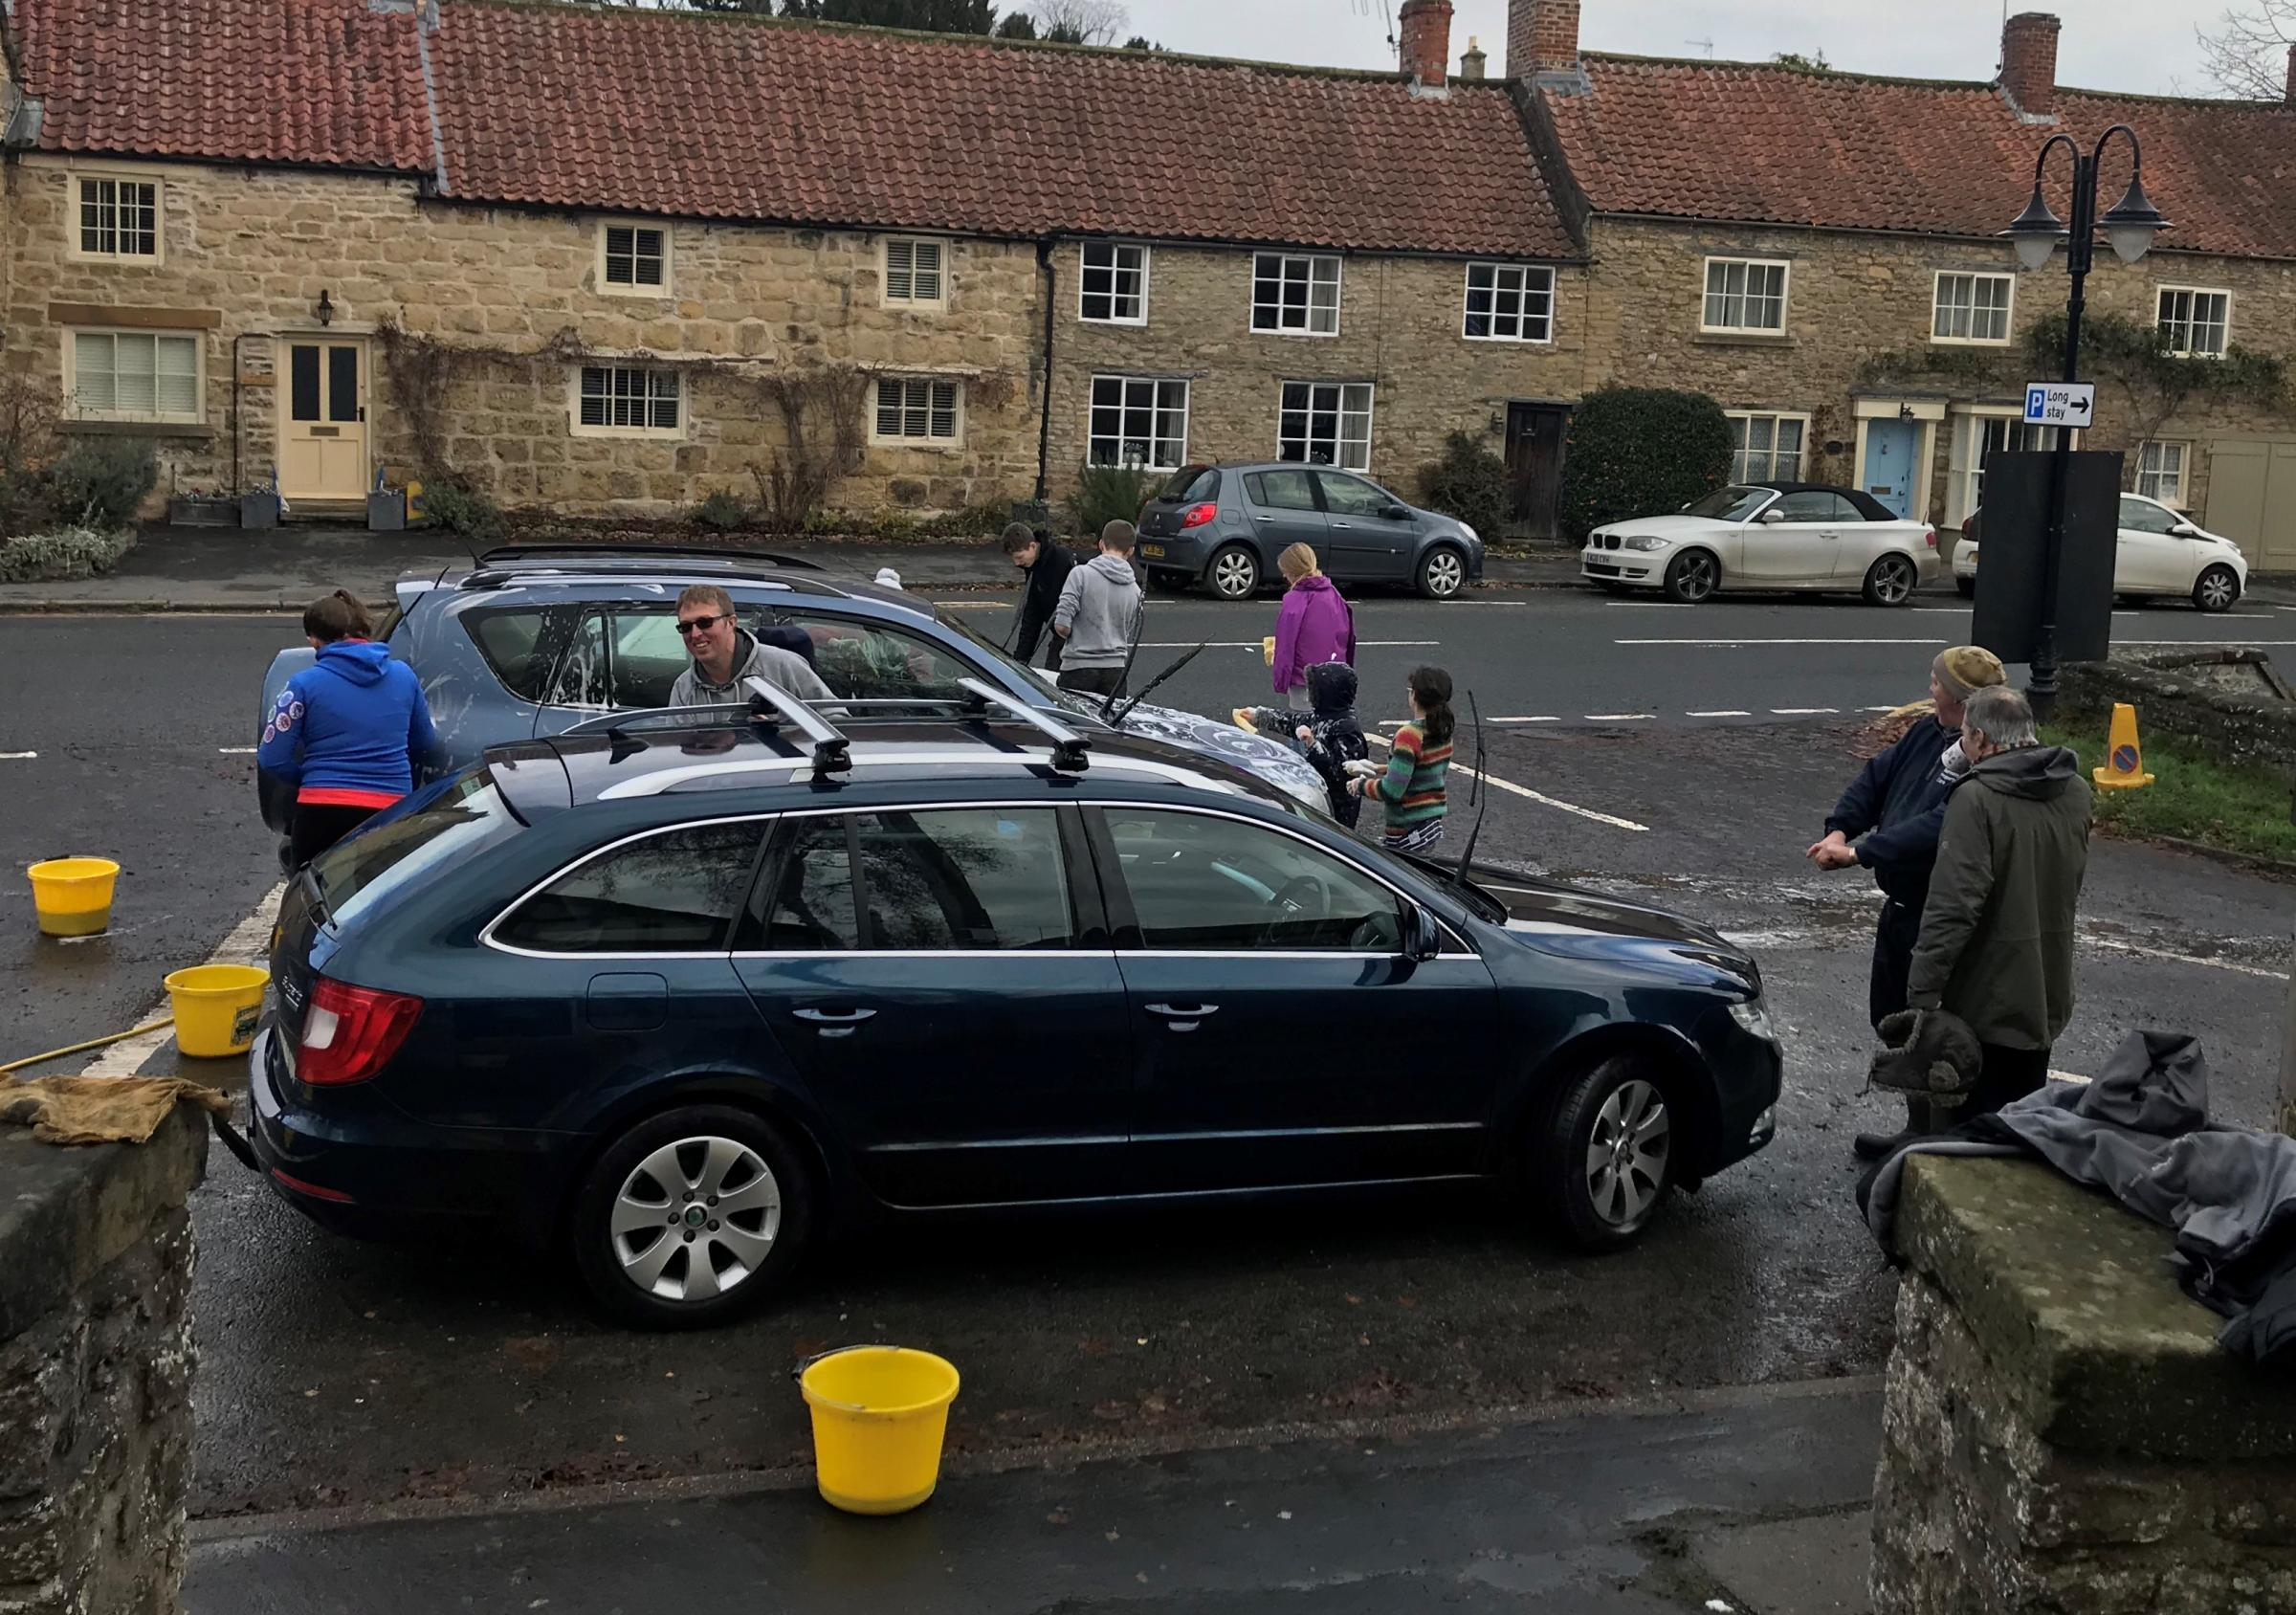 The 1st Helmsley Scout and Girlguiding Group who got together to wash cars and serve breakfasts to raise money for the scout hut rebuild